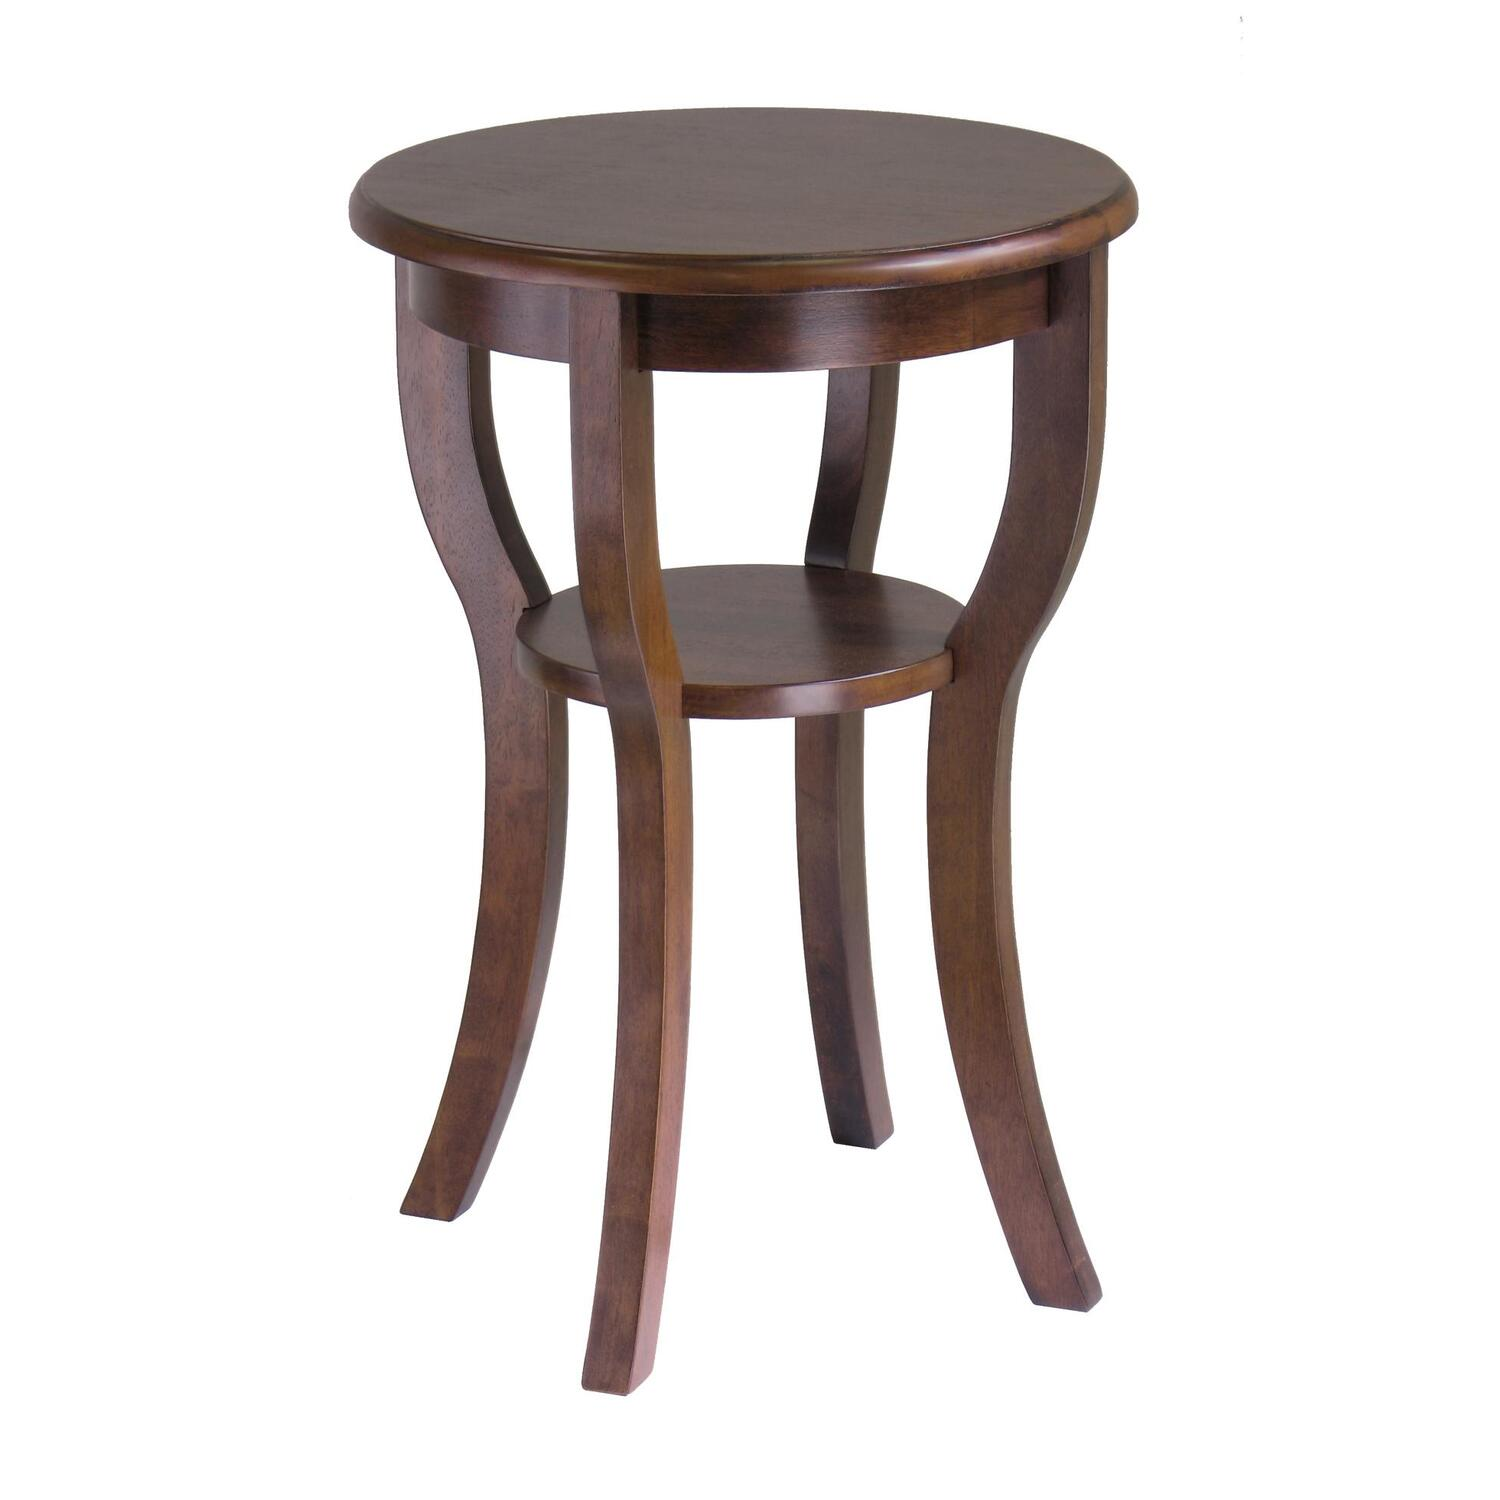 Winsome Kami Accent Round Table with curved Legs by OJ Commerce ...